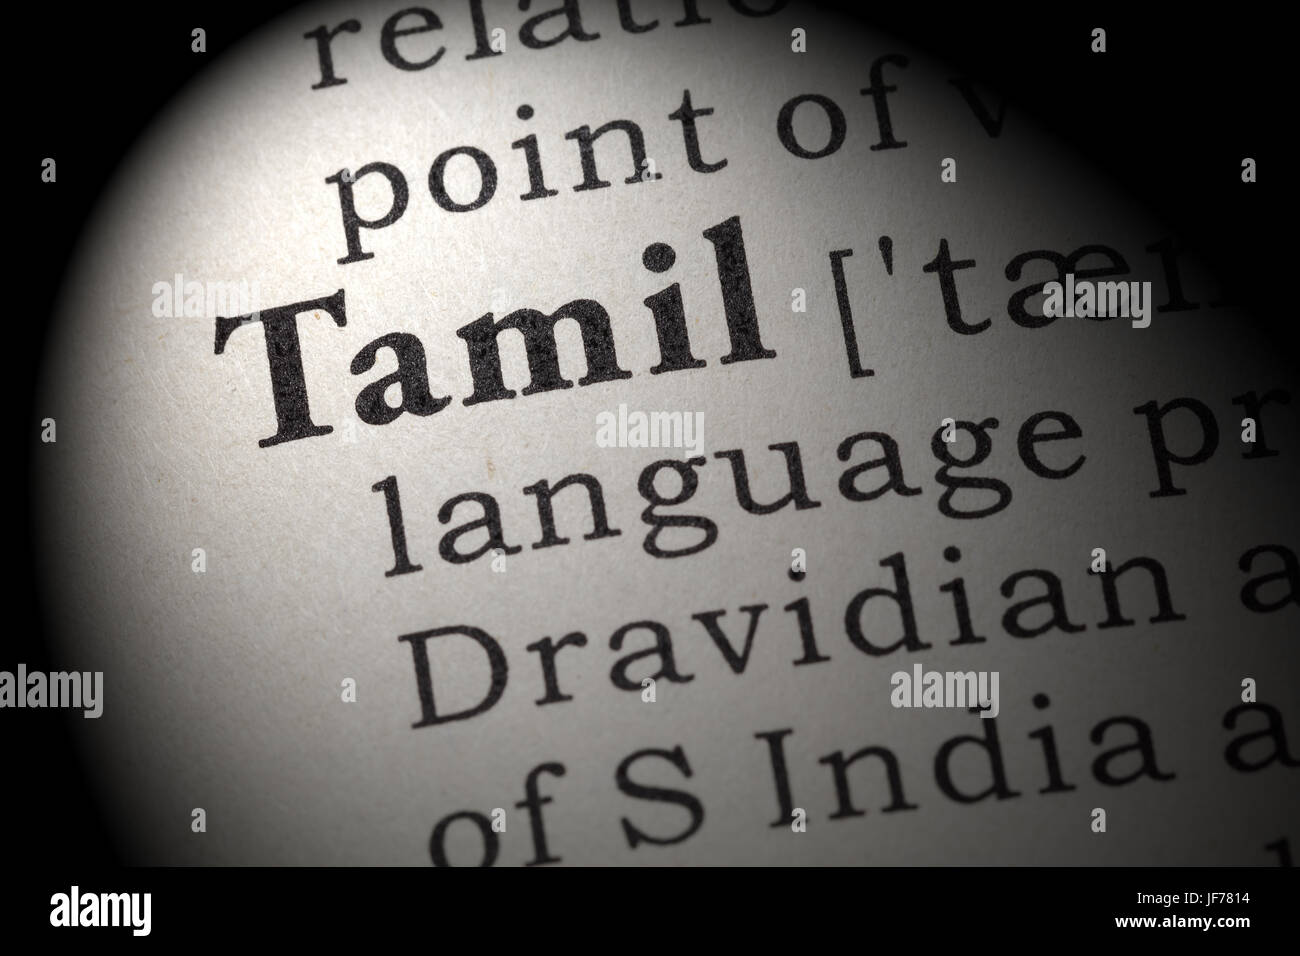 Tamil Word Stock Photos & Tamil Word Stock Images - Alamy